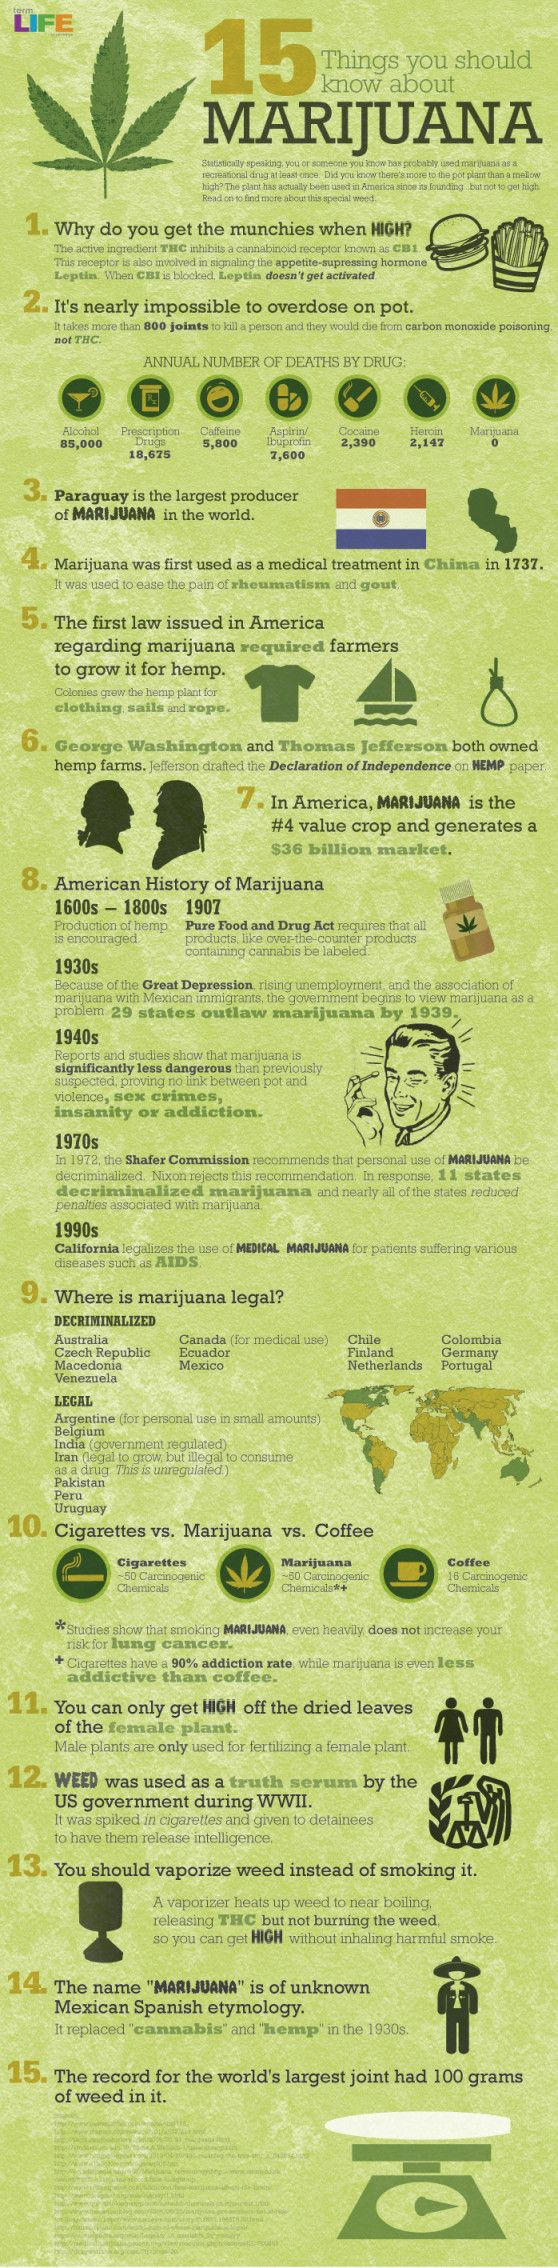 15 Benefits of Marijuana - http://www.seedbankreview.com/seed-boutique/ proven facts